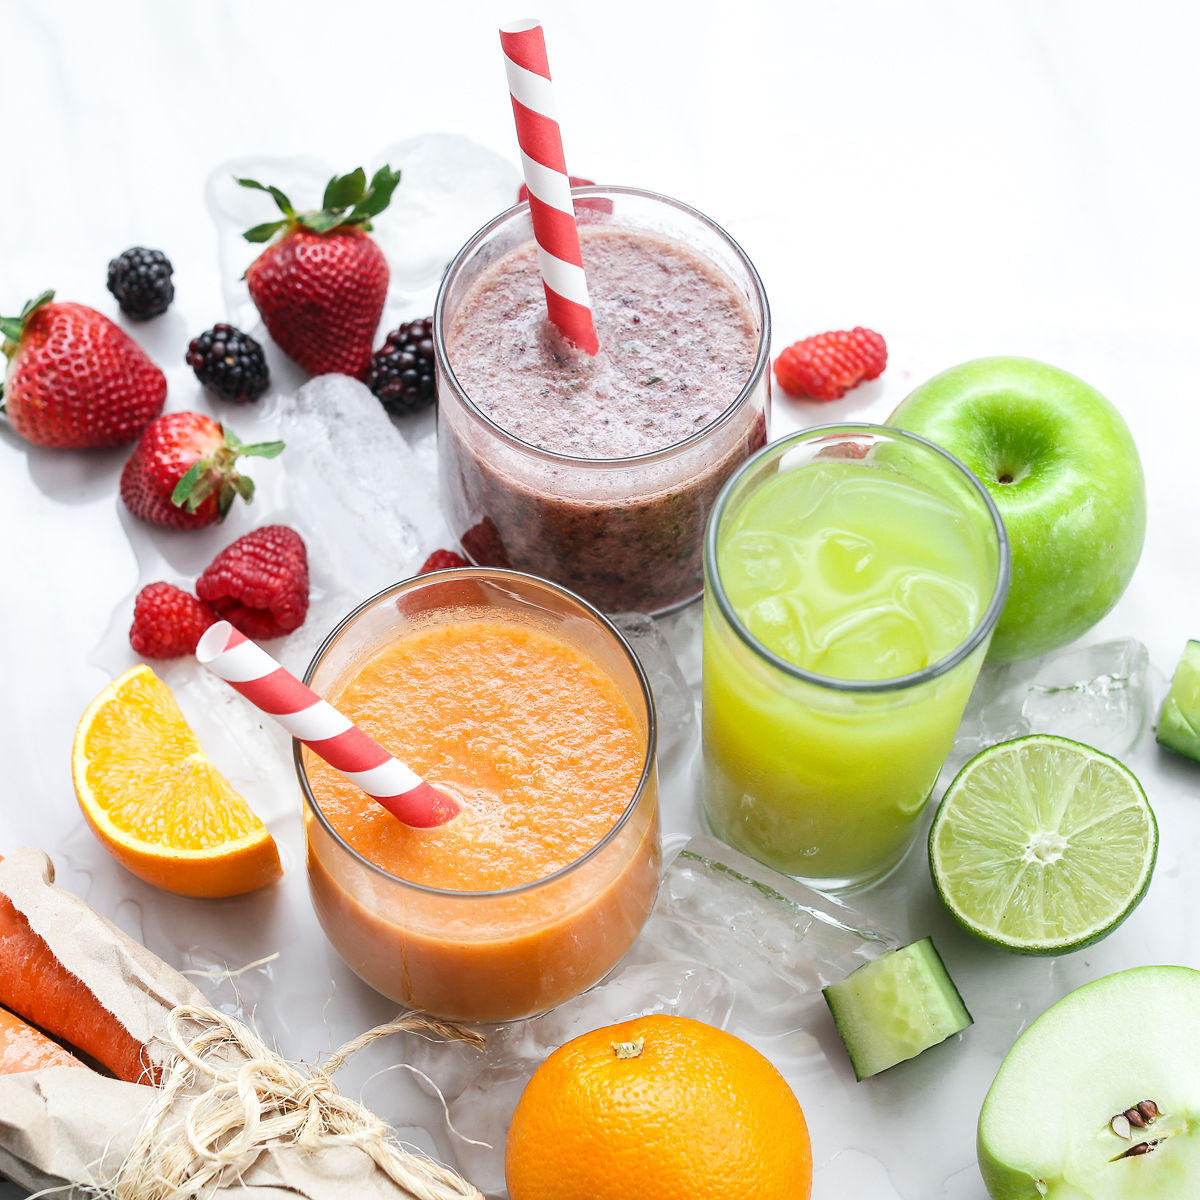 Benefits of Fruit Juice and Smoothies